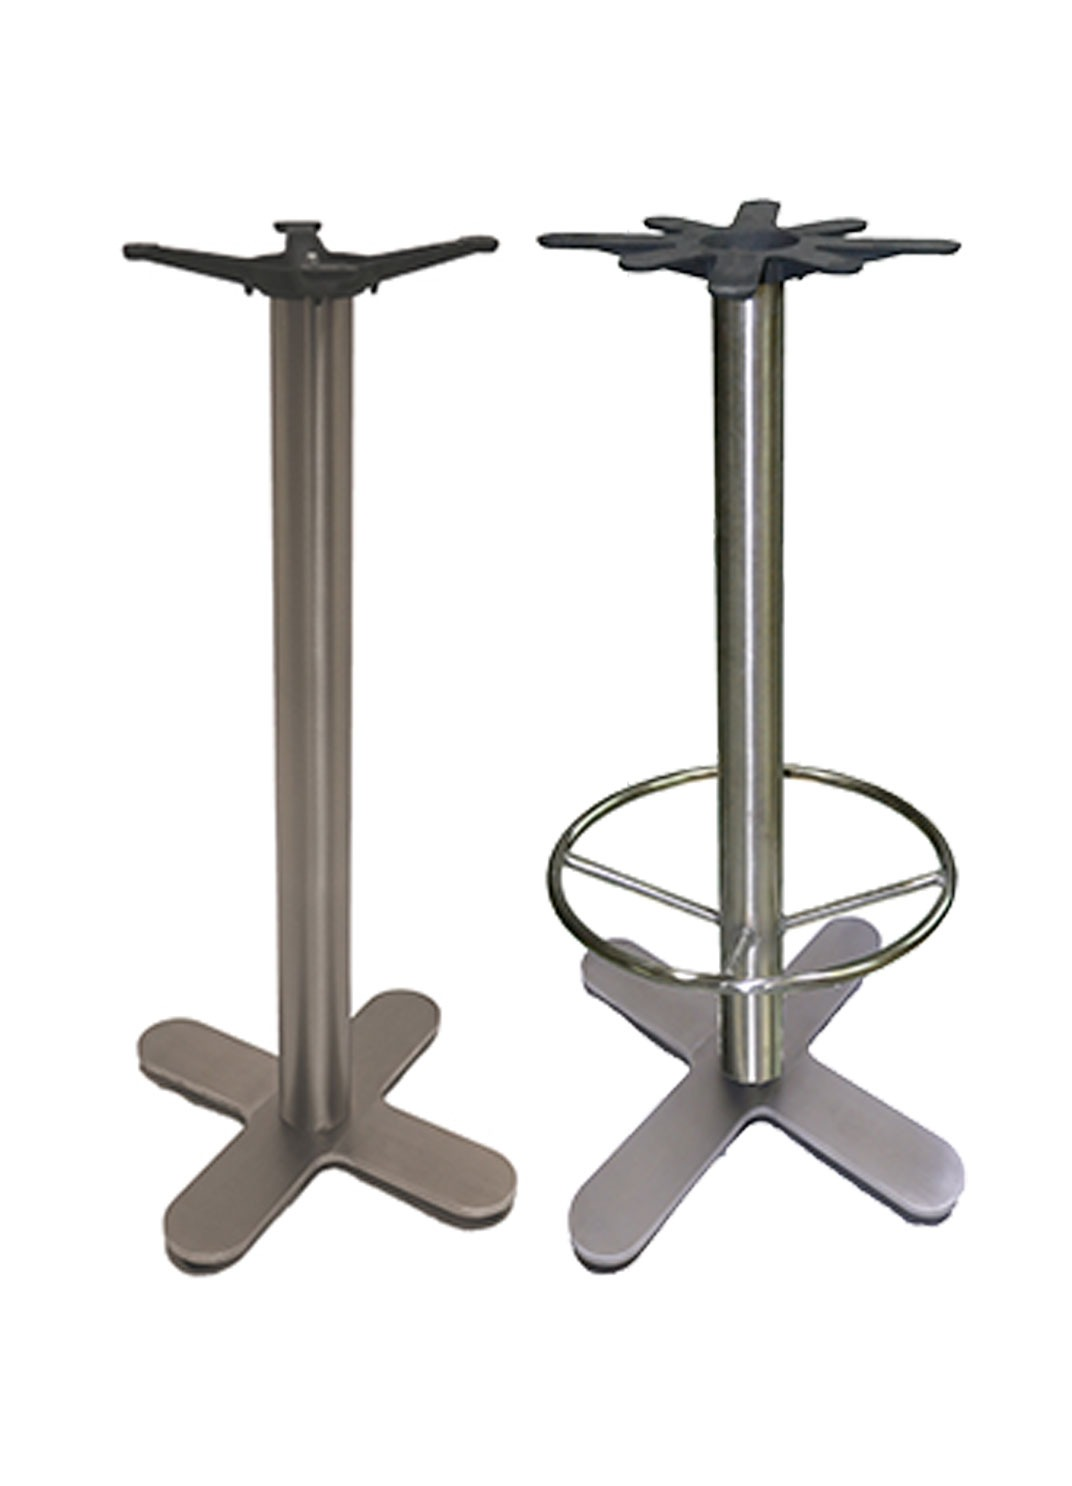 Stainless Restaurant Table Bar Height Stainless Steel Restaurant Table Bases With Or Without